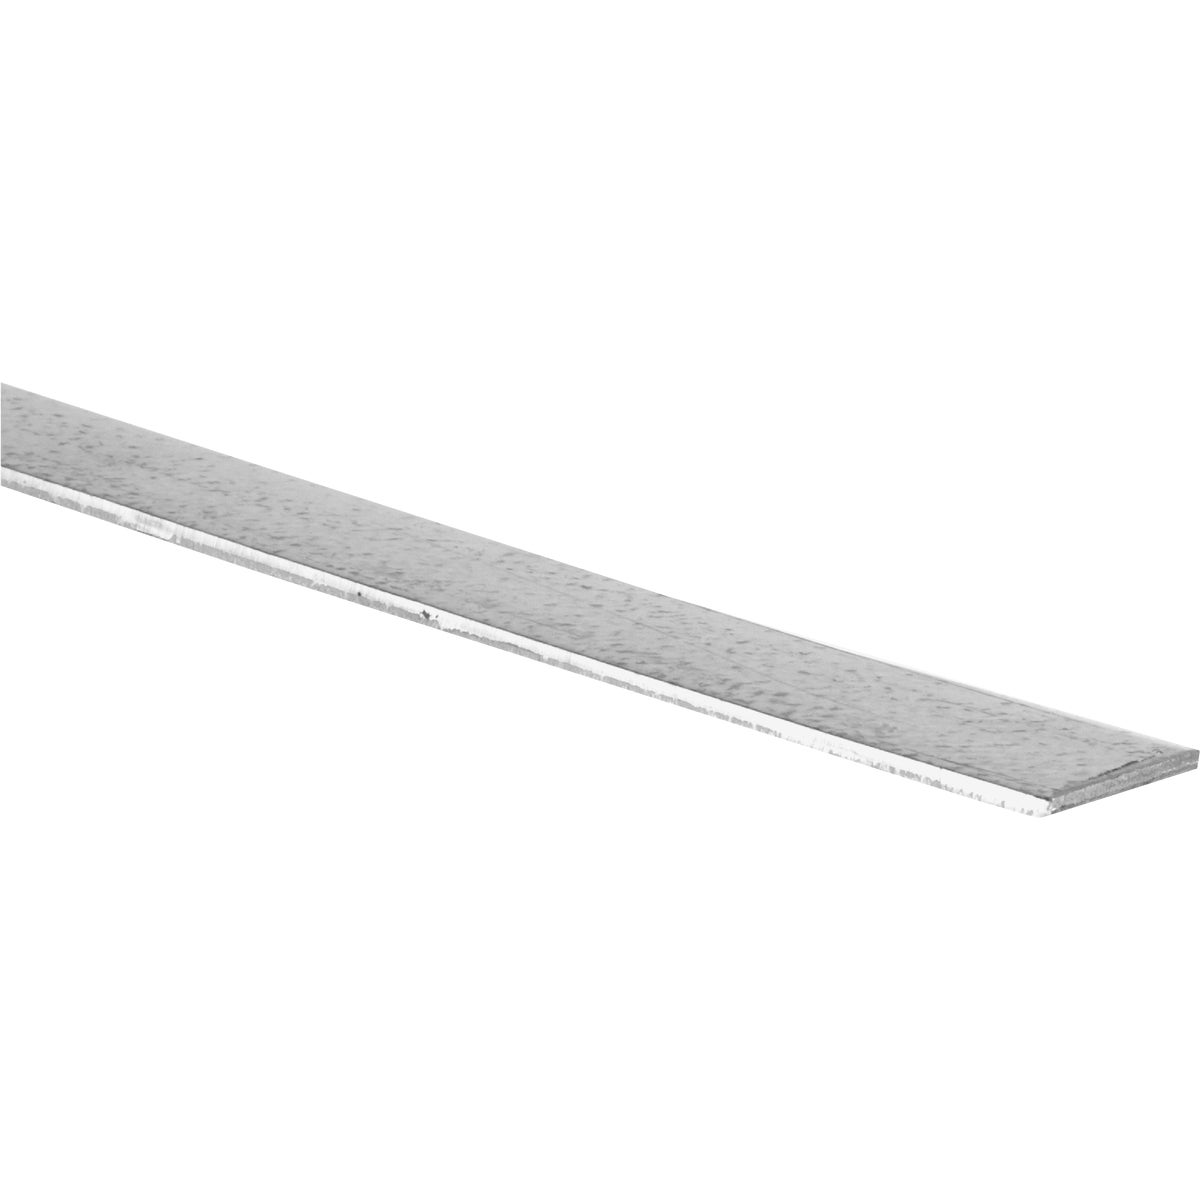 1X3' ZP STEEL FLAT BAR - N180018 by National Mfg Co